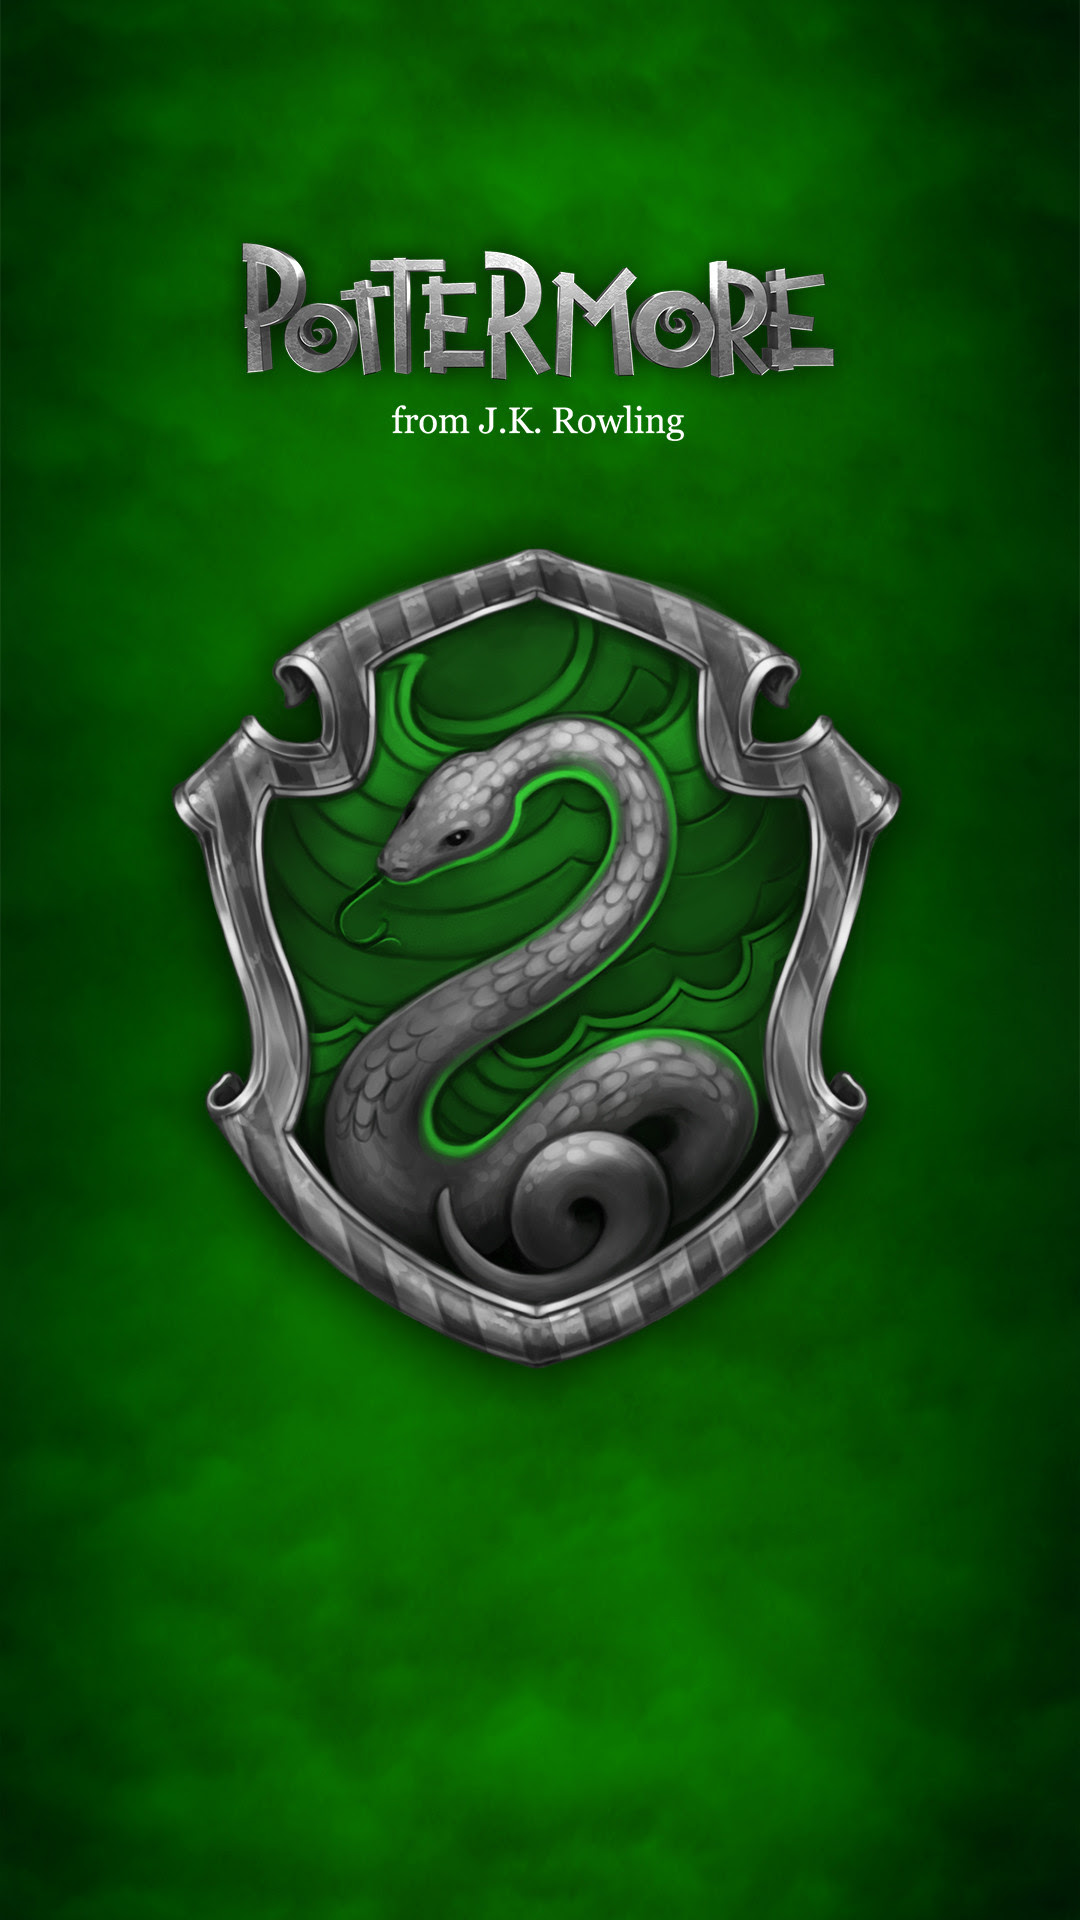 Harry Potter Wallpaper iPhone (71+ images)